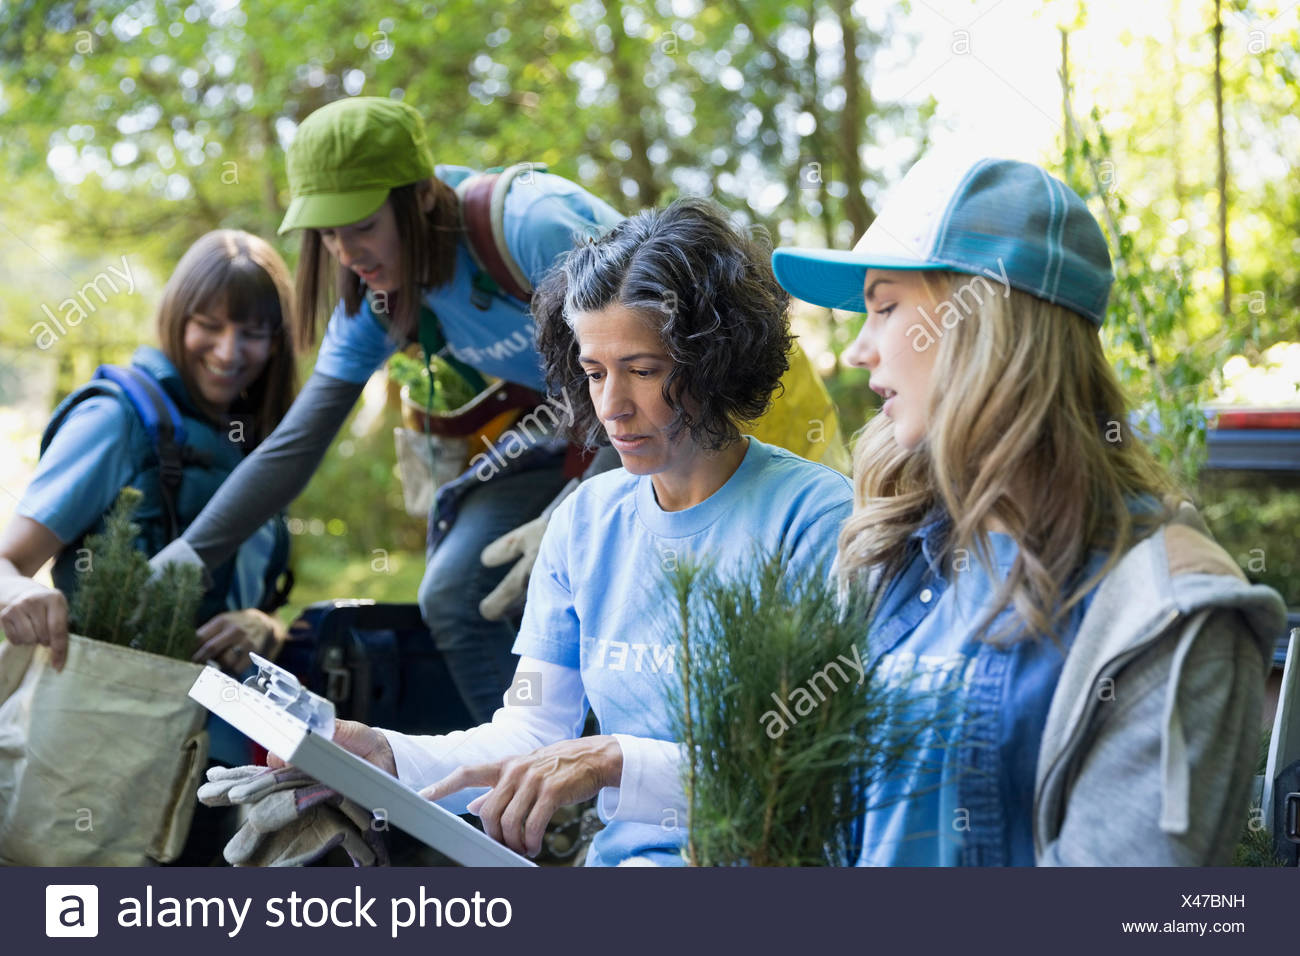 Leader with clipboard guiding tree planting volunteer - Stock Image